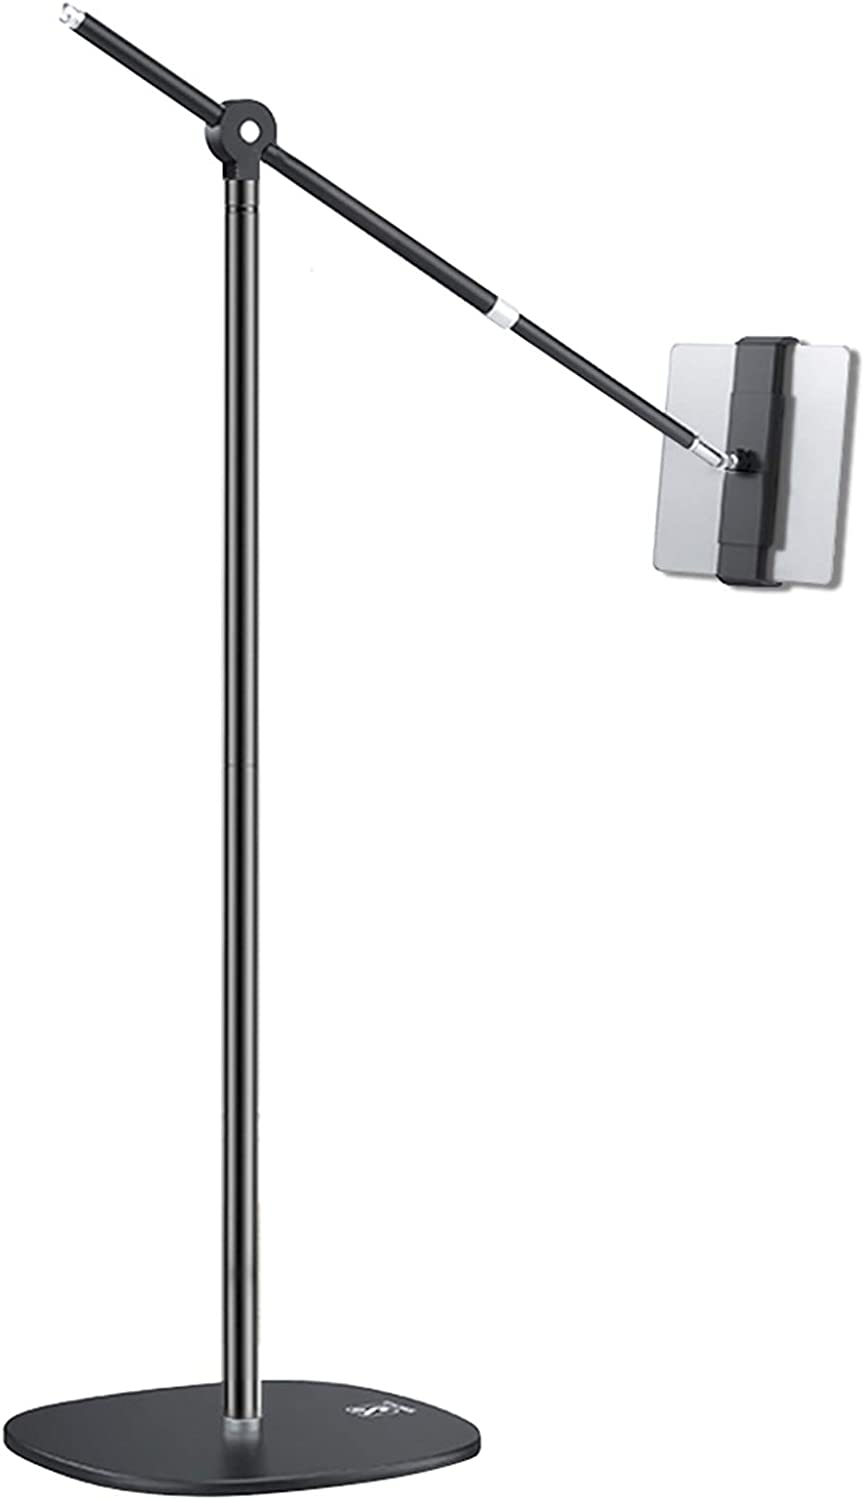 iPad Pro Floor Stand, Height Angle Adjustable Extendable Rod for Standing Sitting Lying Down Use, Universal Holder for 4.7-11 Inches iPhone iPad Pro Air Mini Android Tablets, Weighted Base, 10.4LB